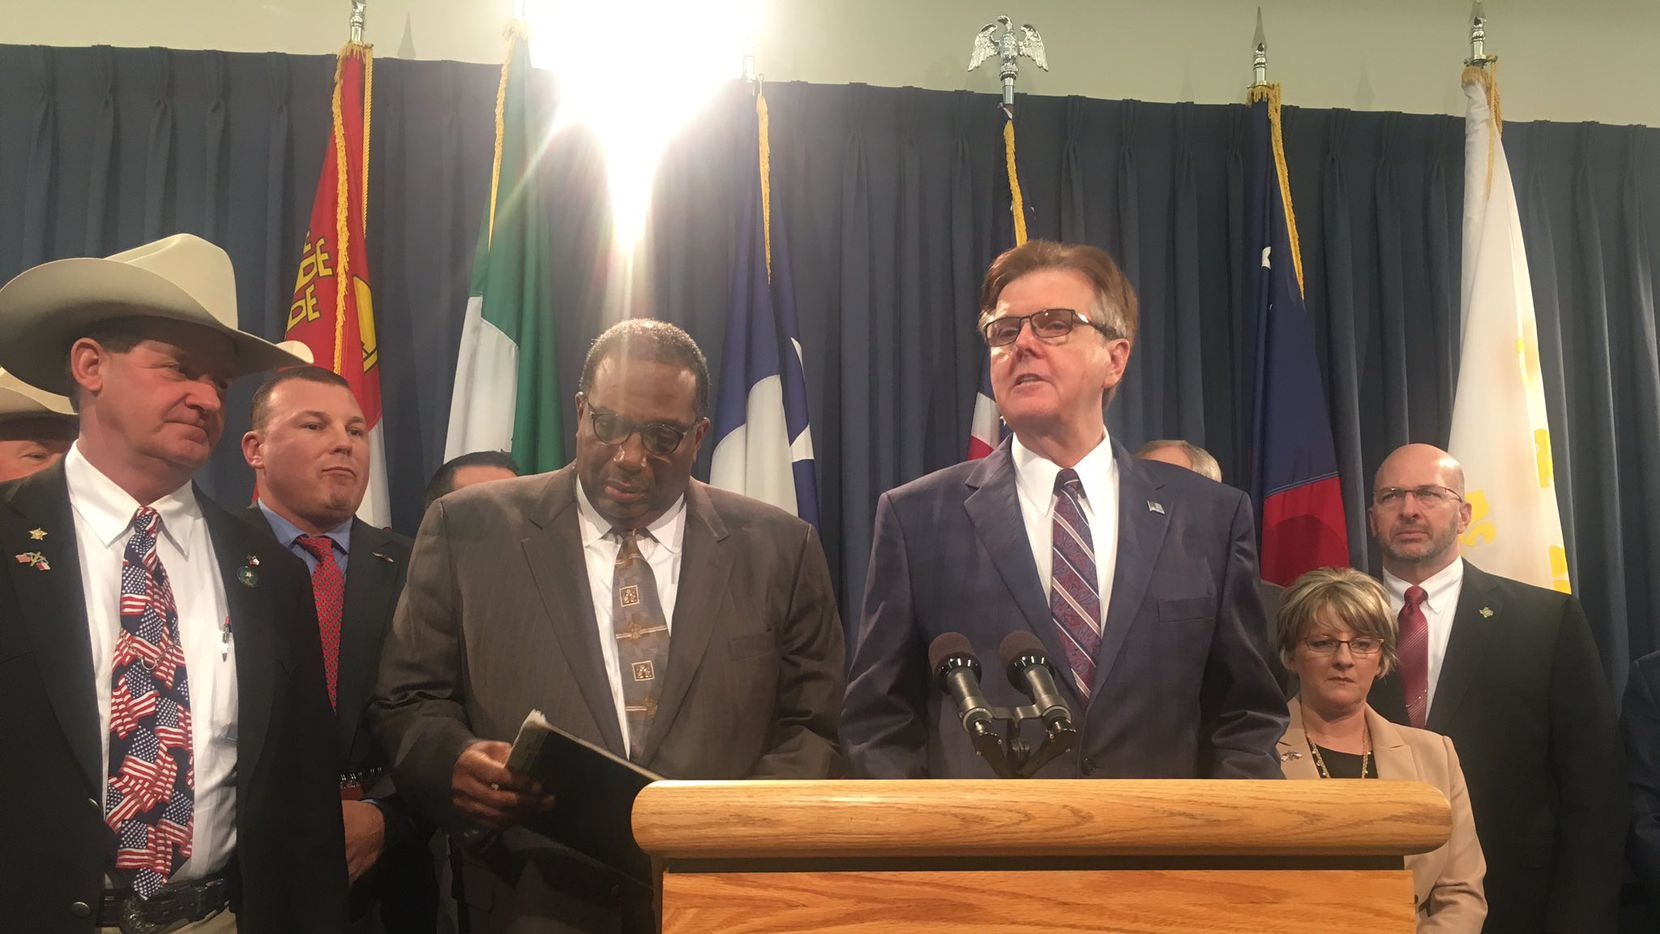 Dallas Sen. Royce West and Lt. Gov. Dan Patrick spoke at a news conference Thursday about a bill that would establish a grant program for law enforcement agencies to purchase stronger protective vests.